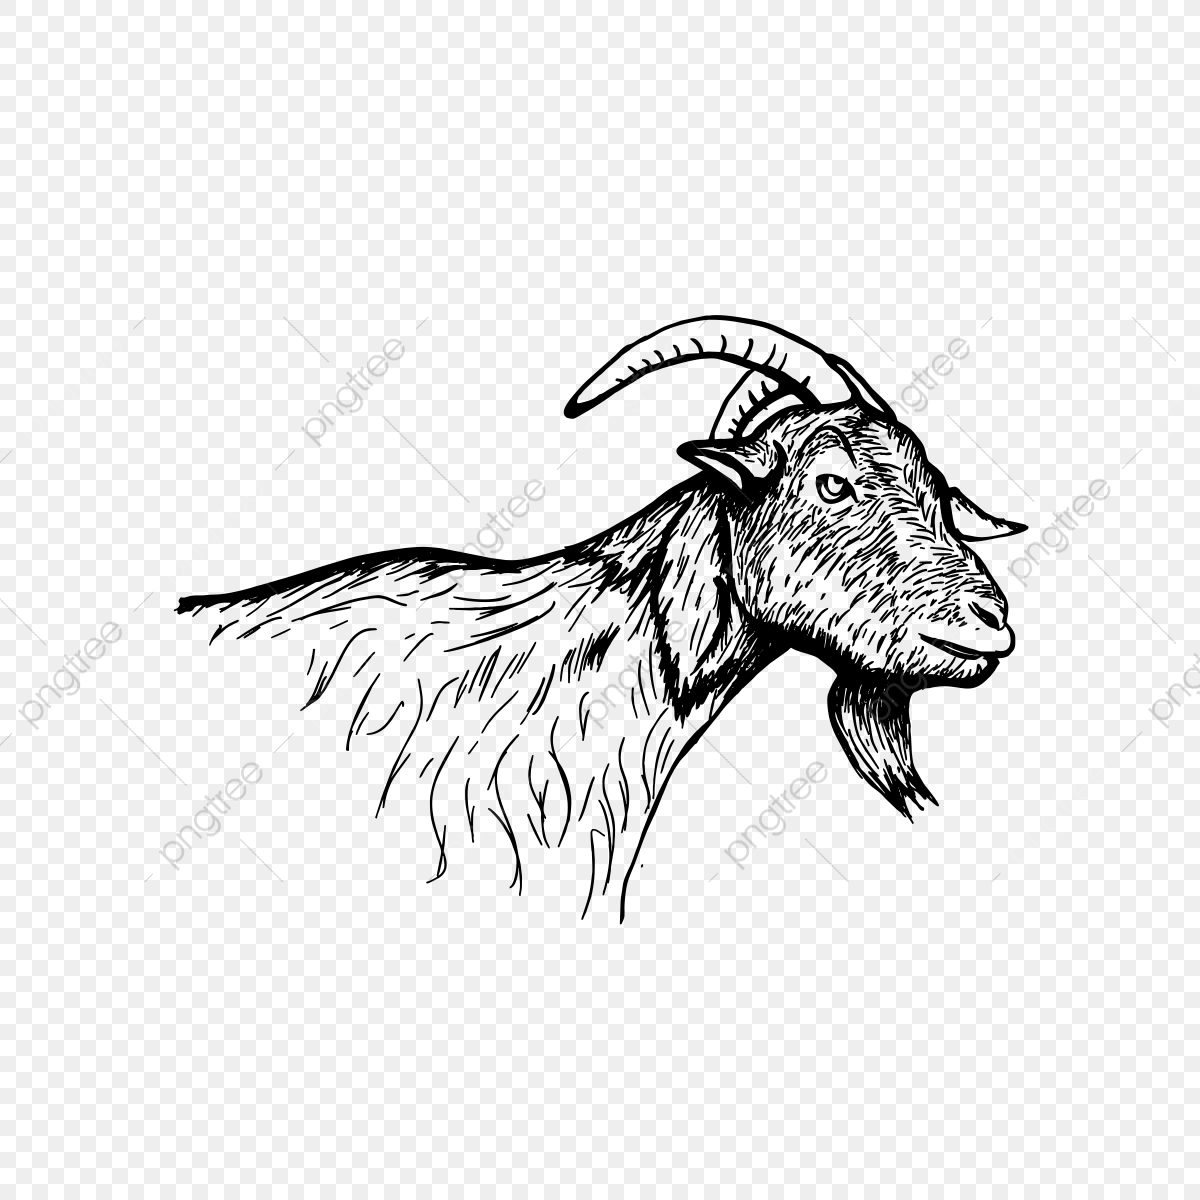 goat head drawing hand sketch of goat head stock illustration in 2020 goat head drawing